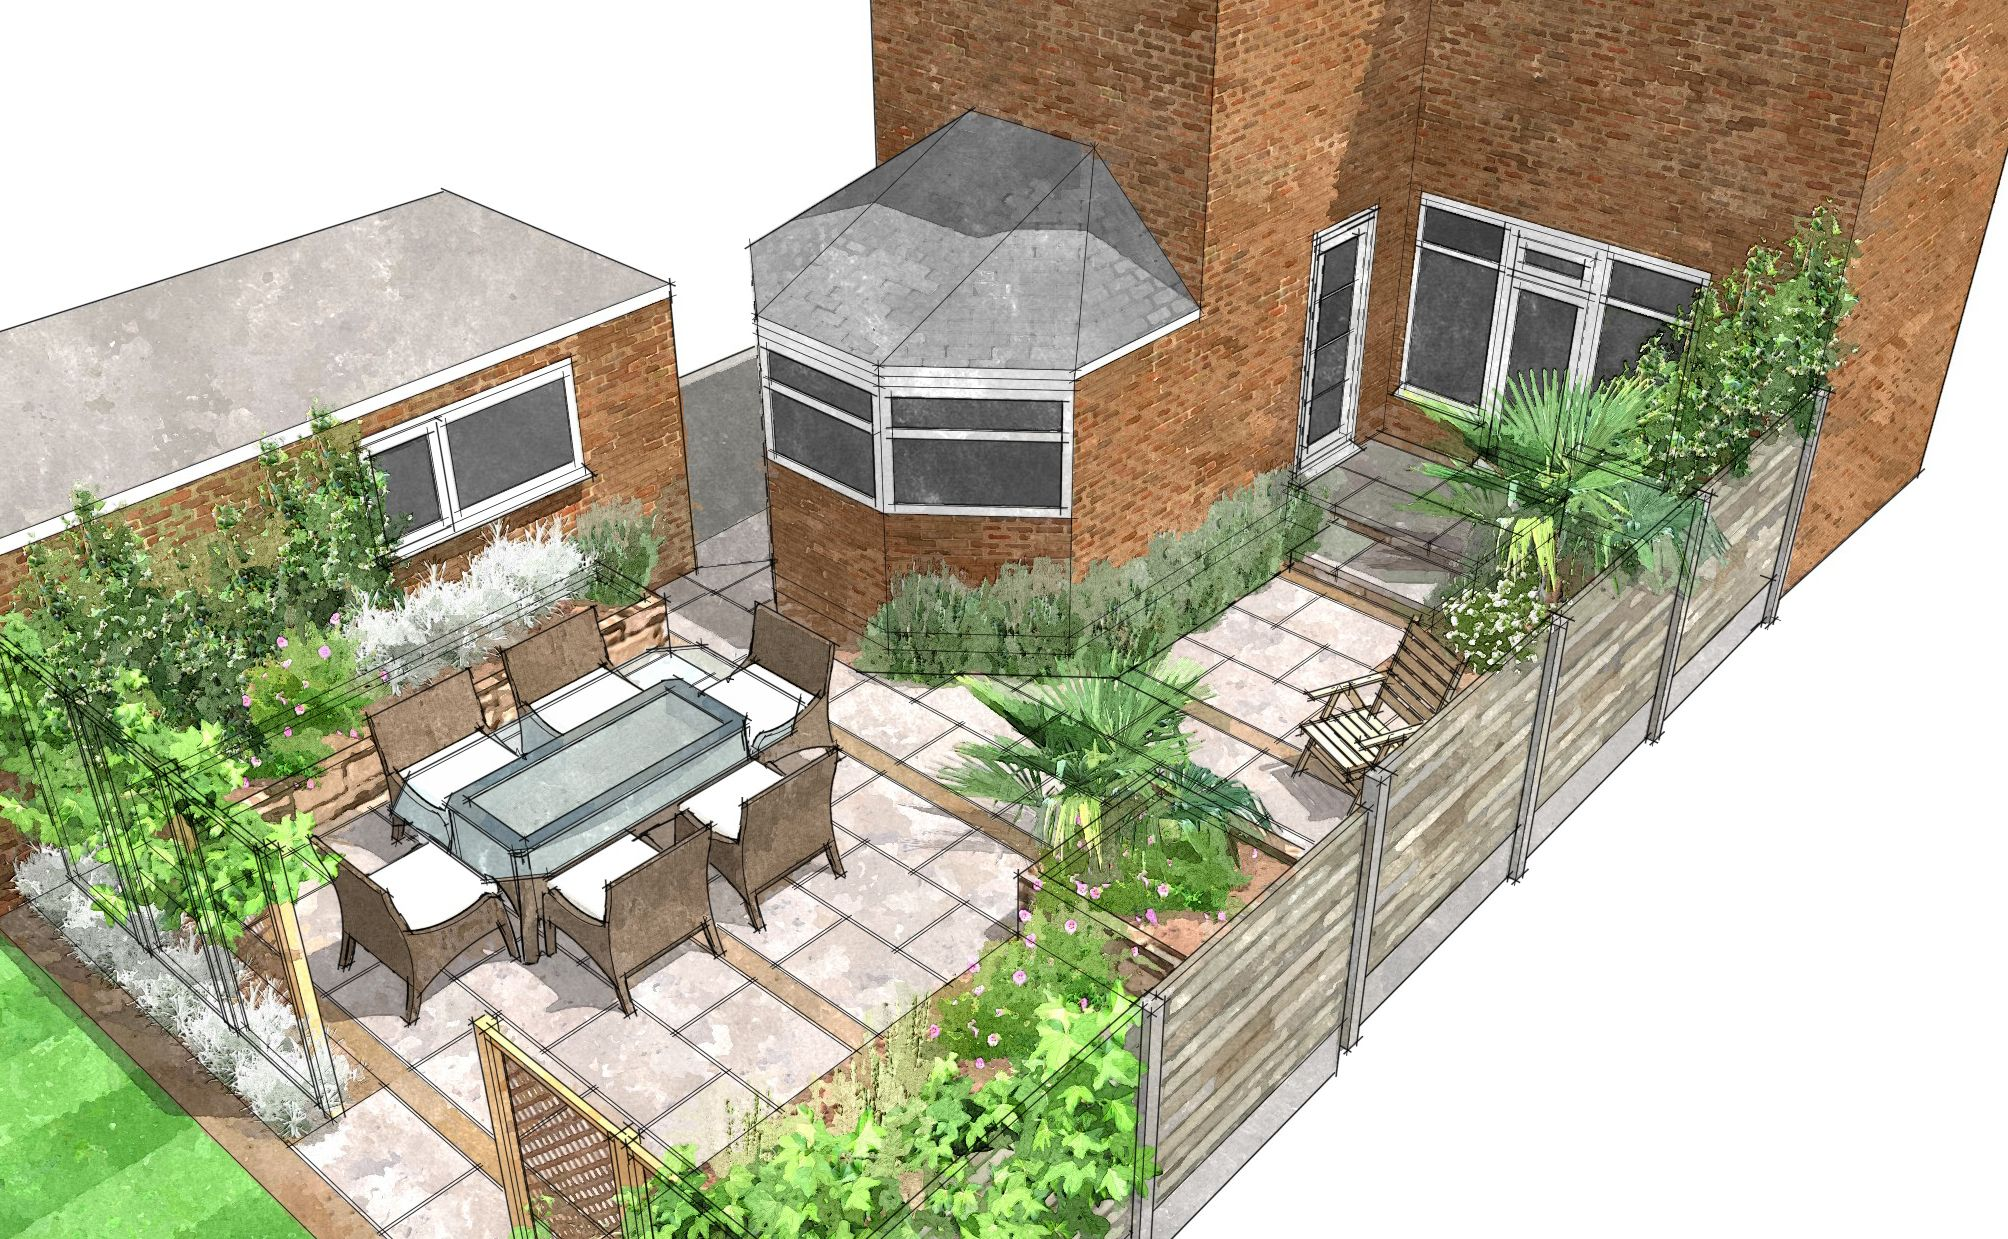 Garden Design Plan by Sally Bishton SketchUp by Gaynor Witchard